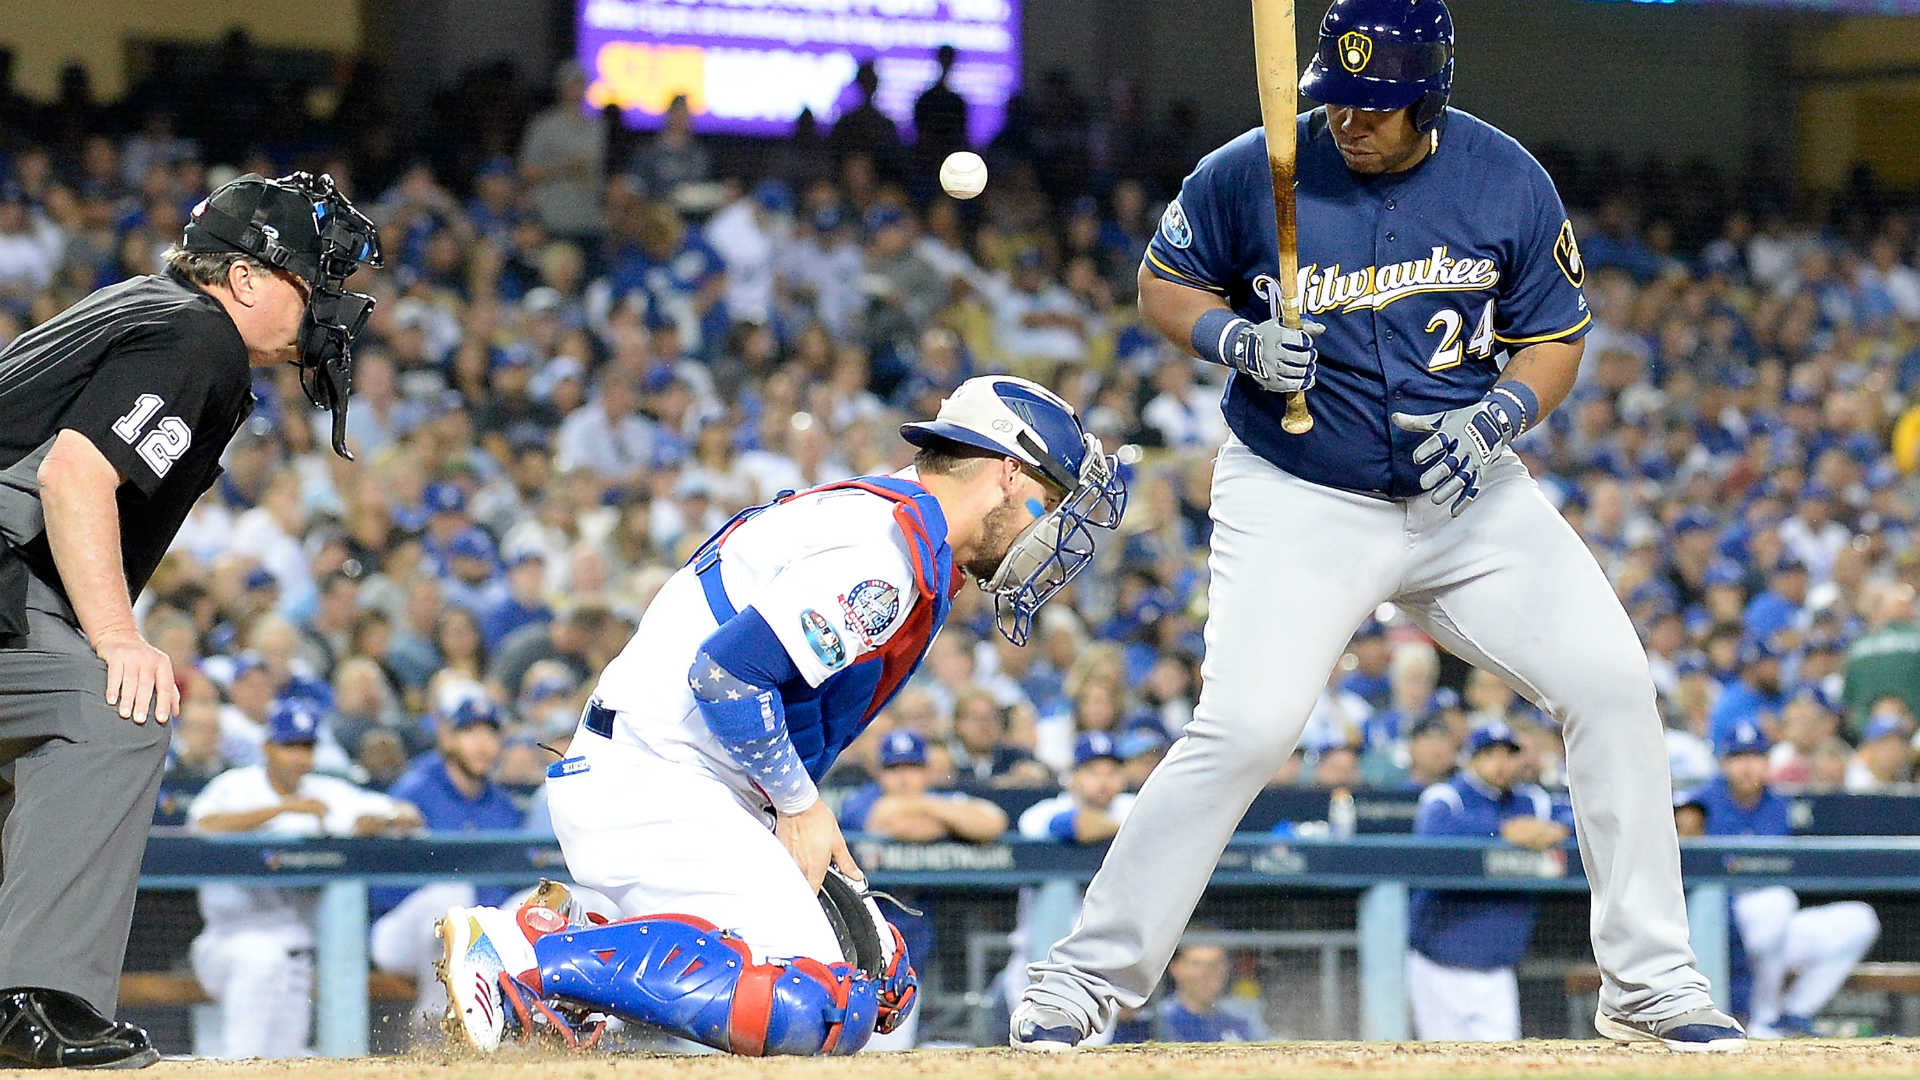 Brewers vs. Dodgers - Game Recap